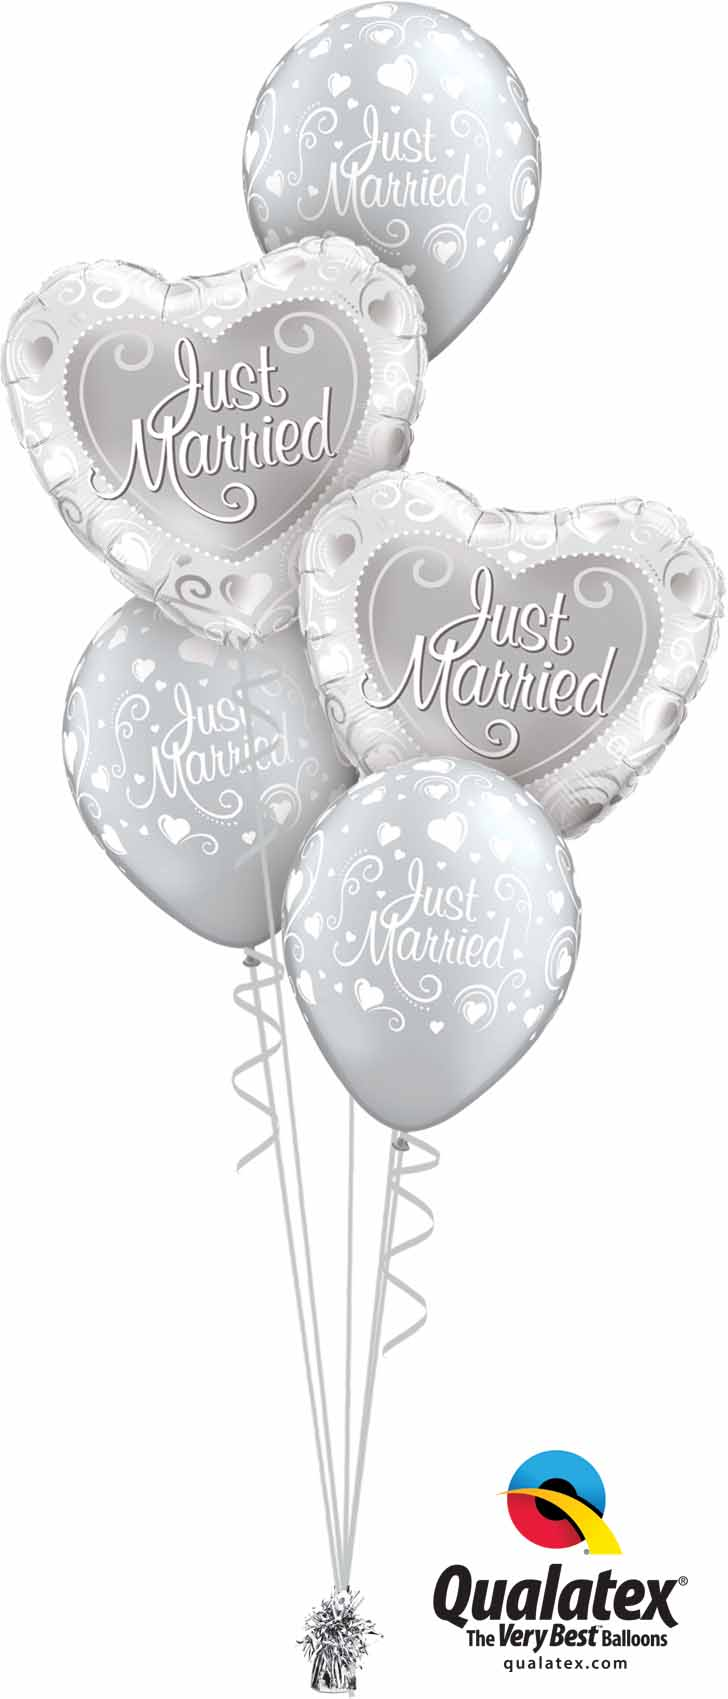 15816 18653 Just Married Hearts Classic